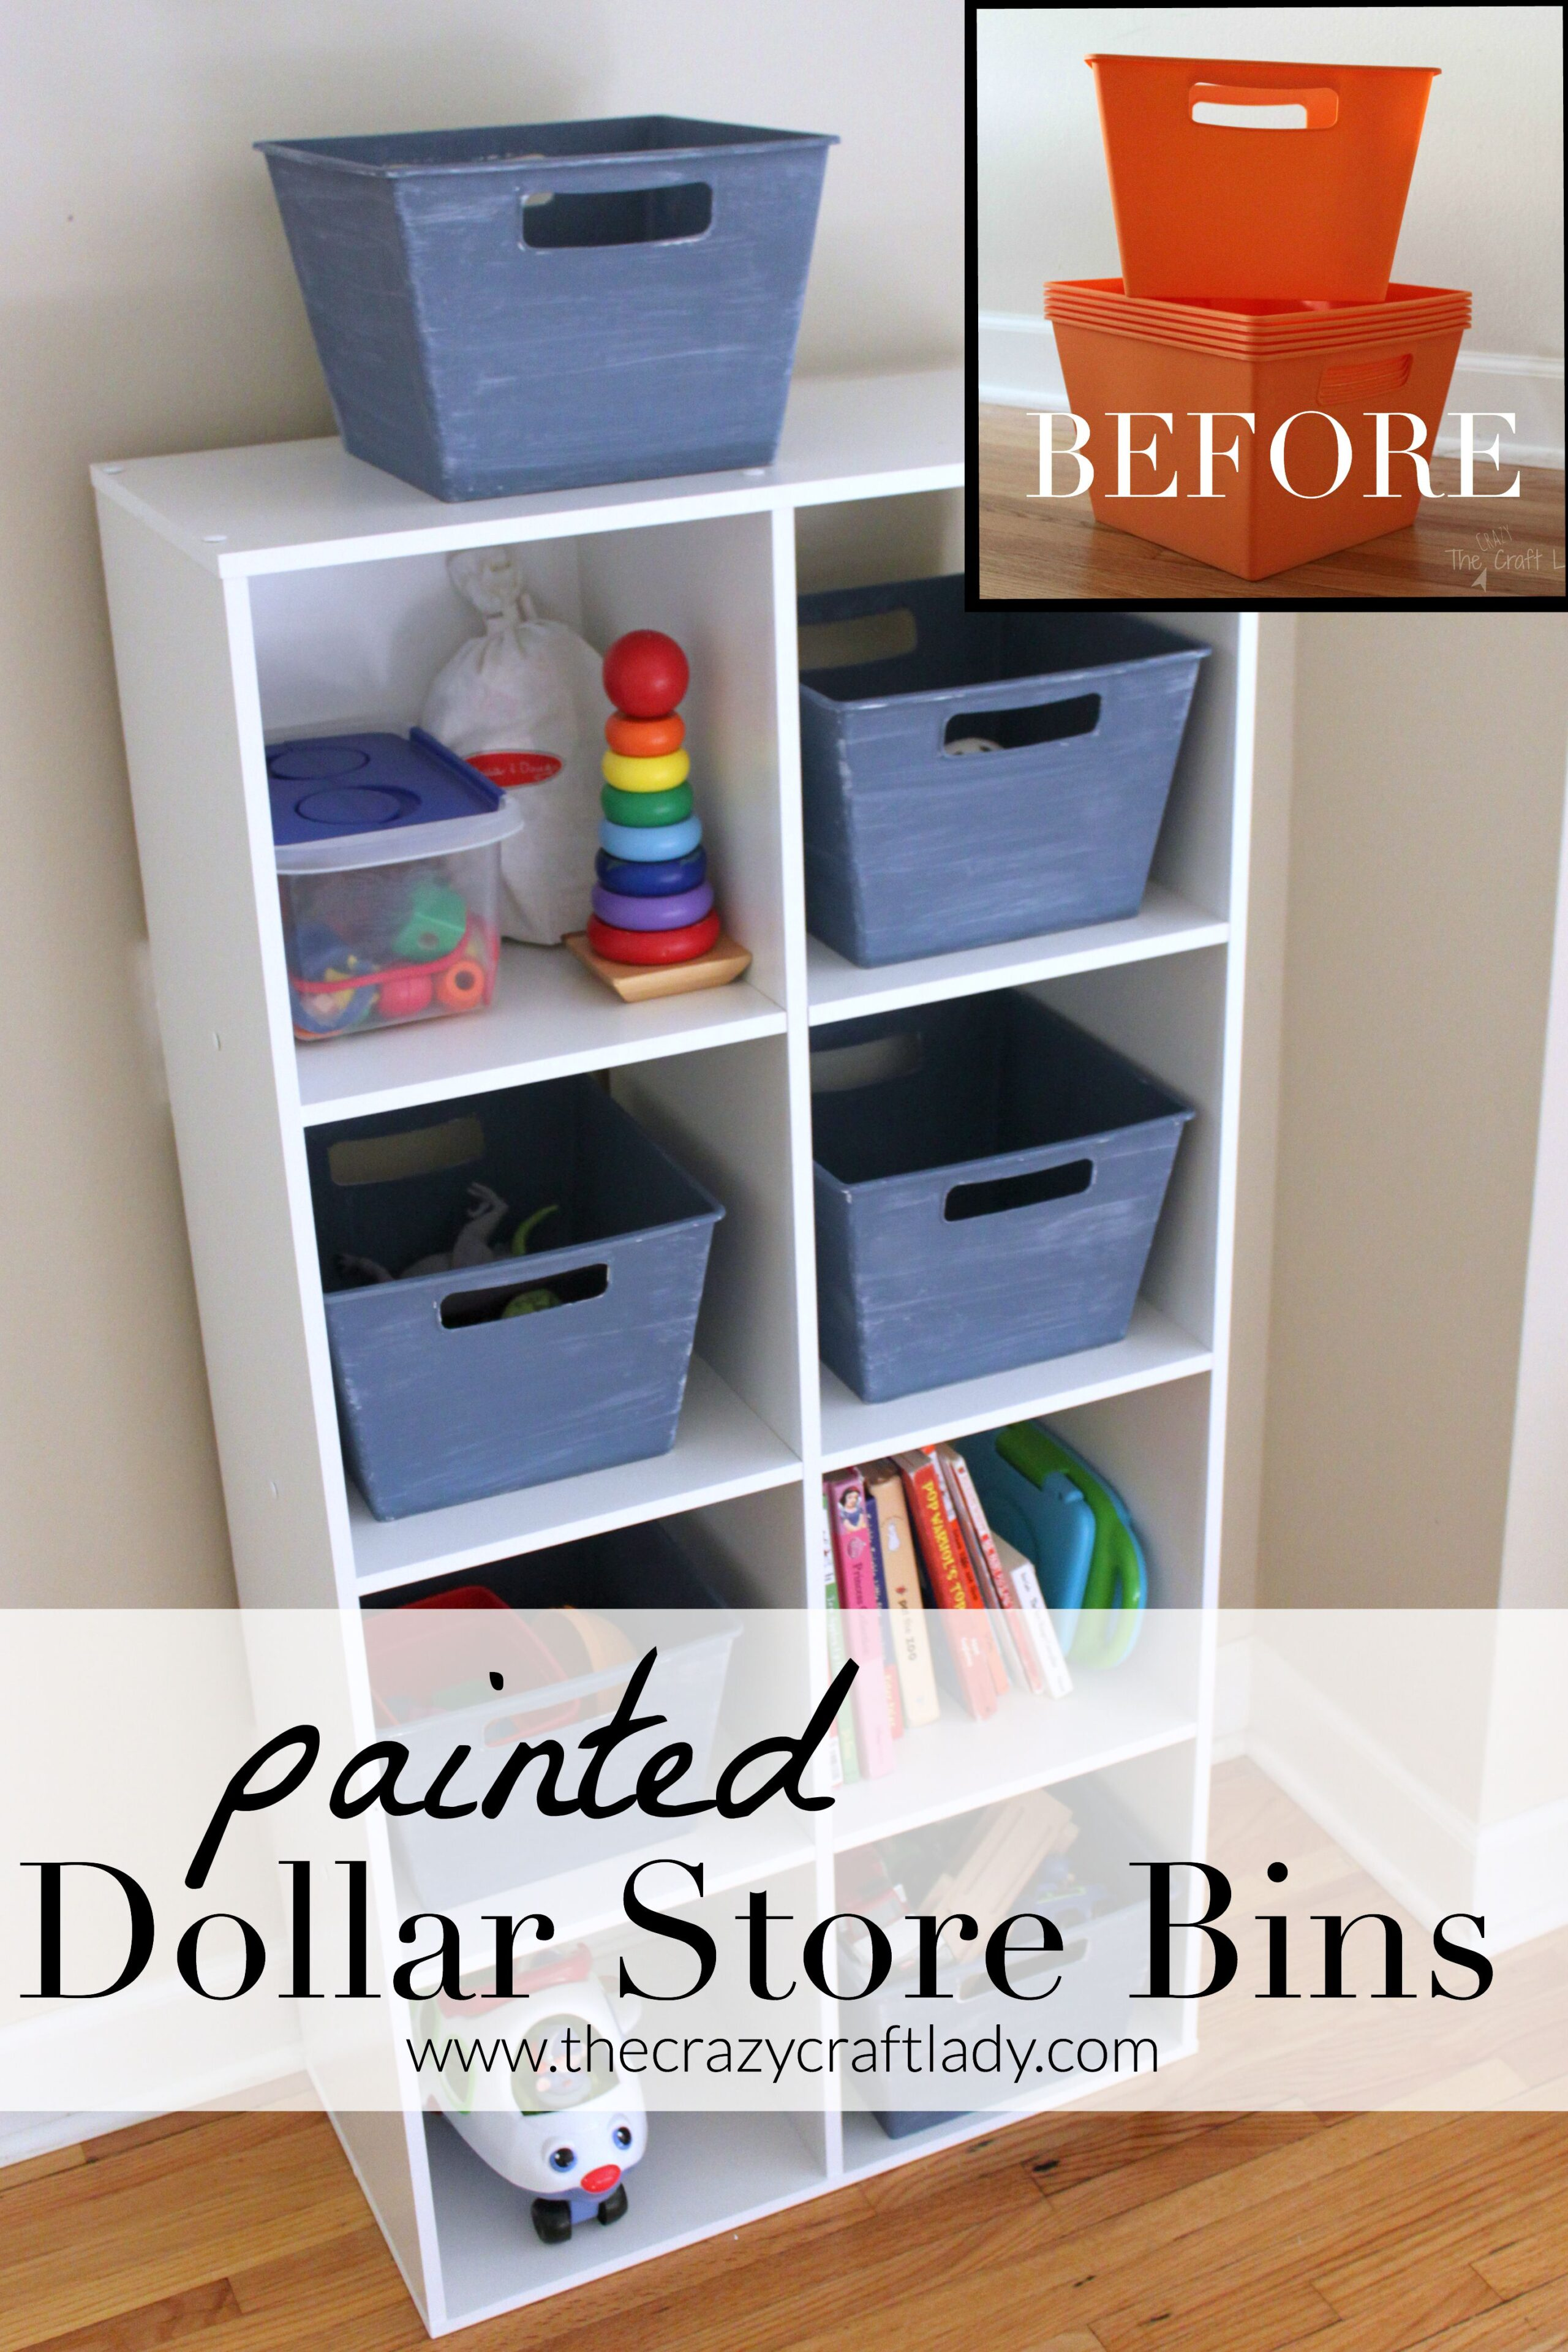 Getting Organized With Painted Dollar Store Bins The